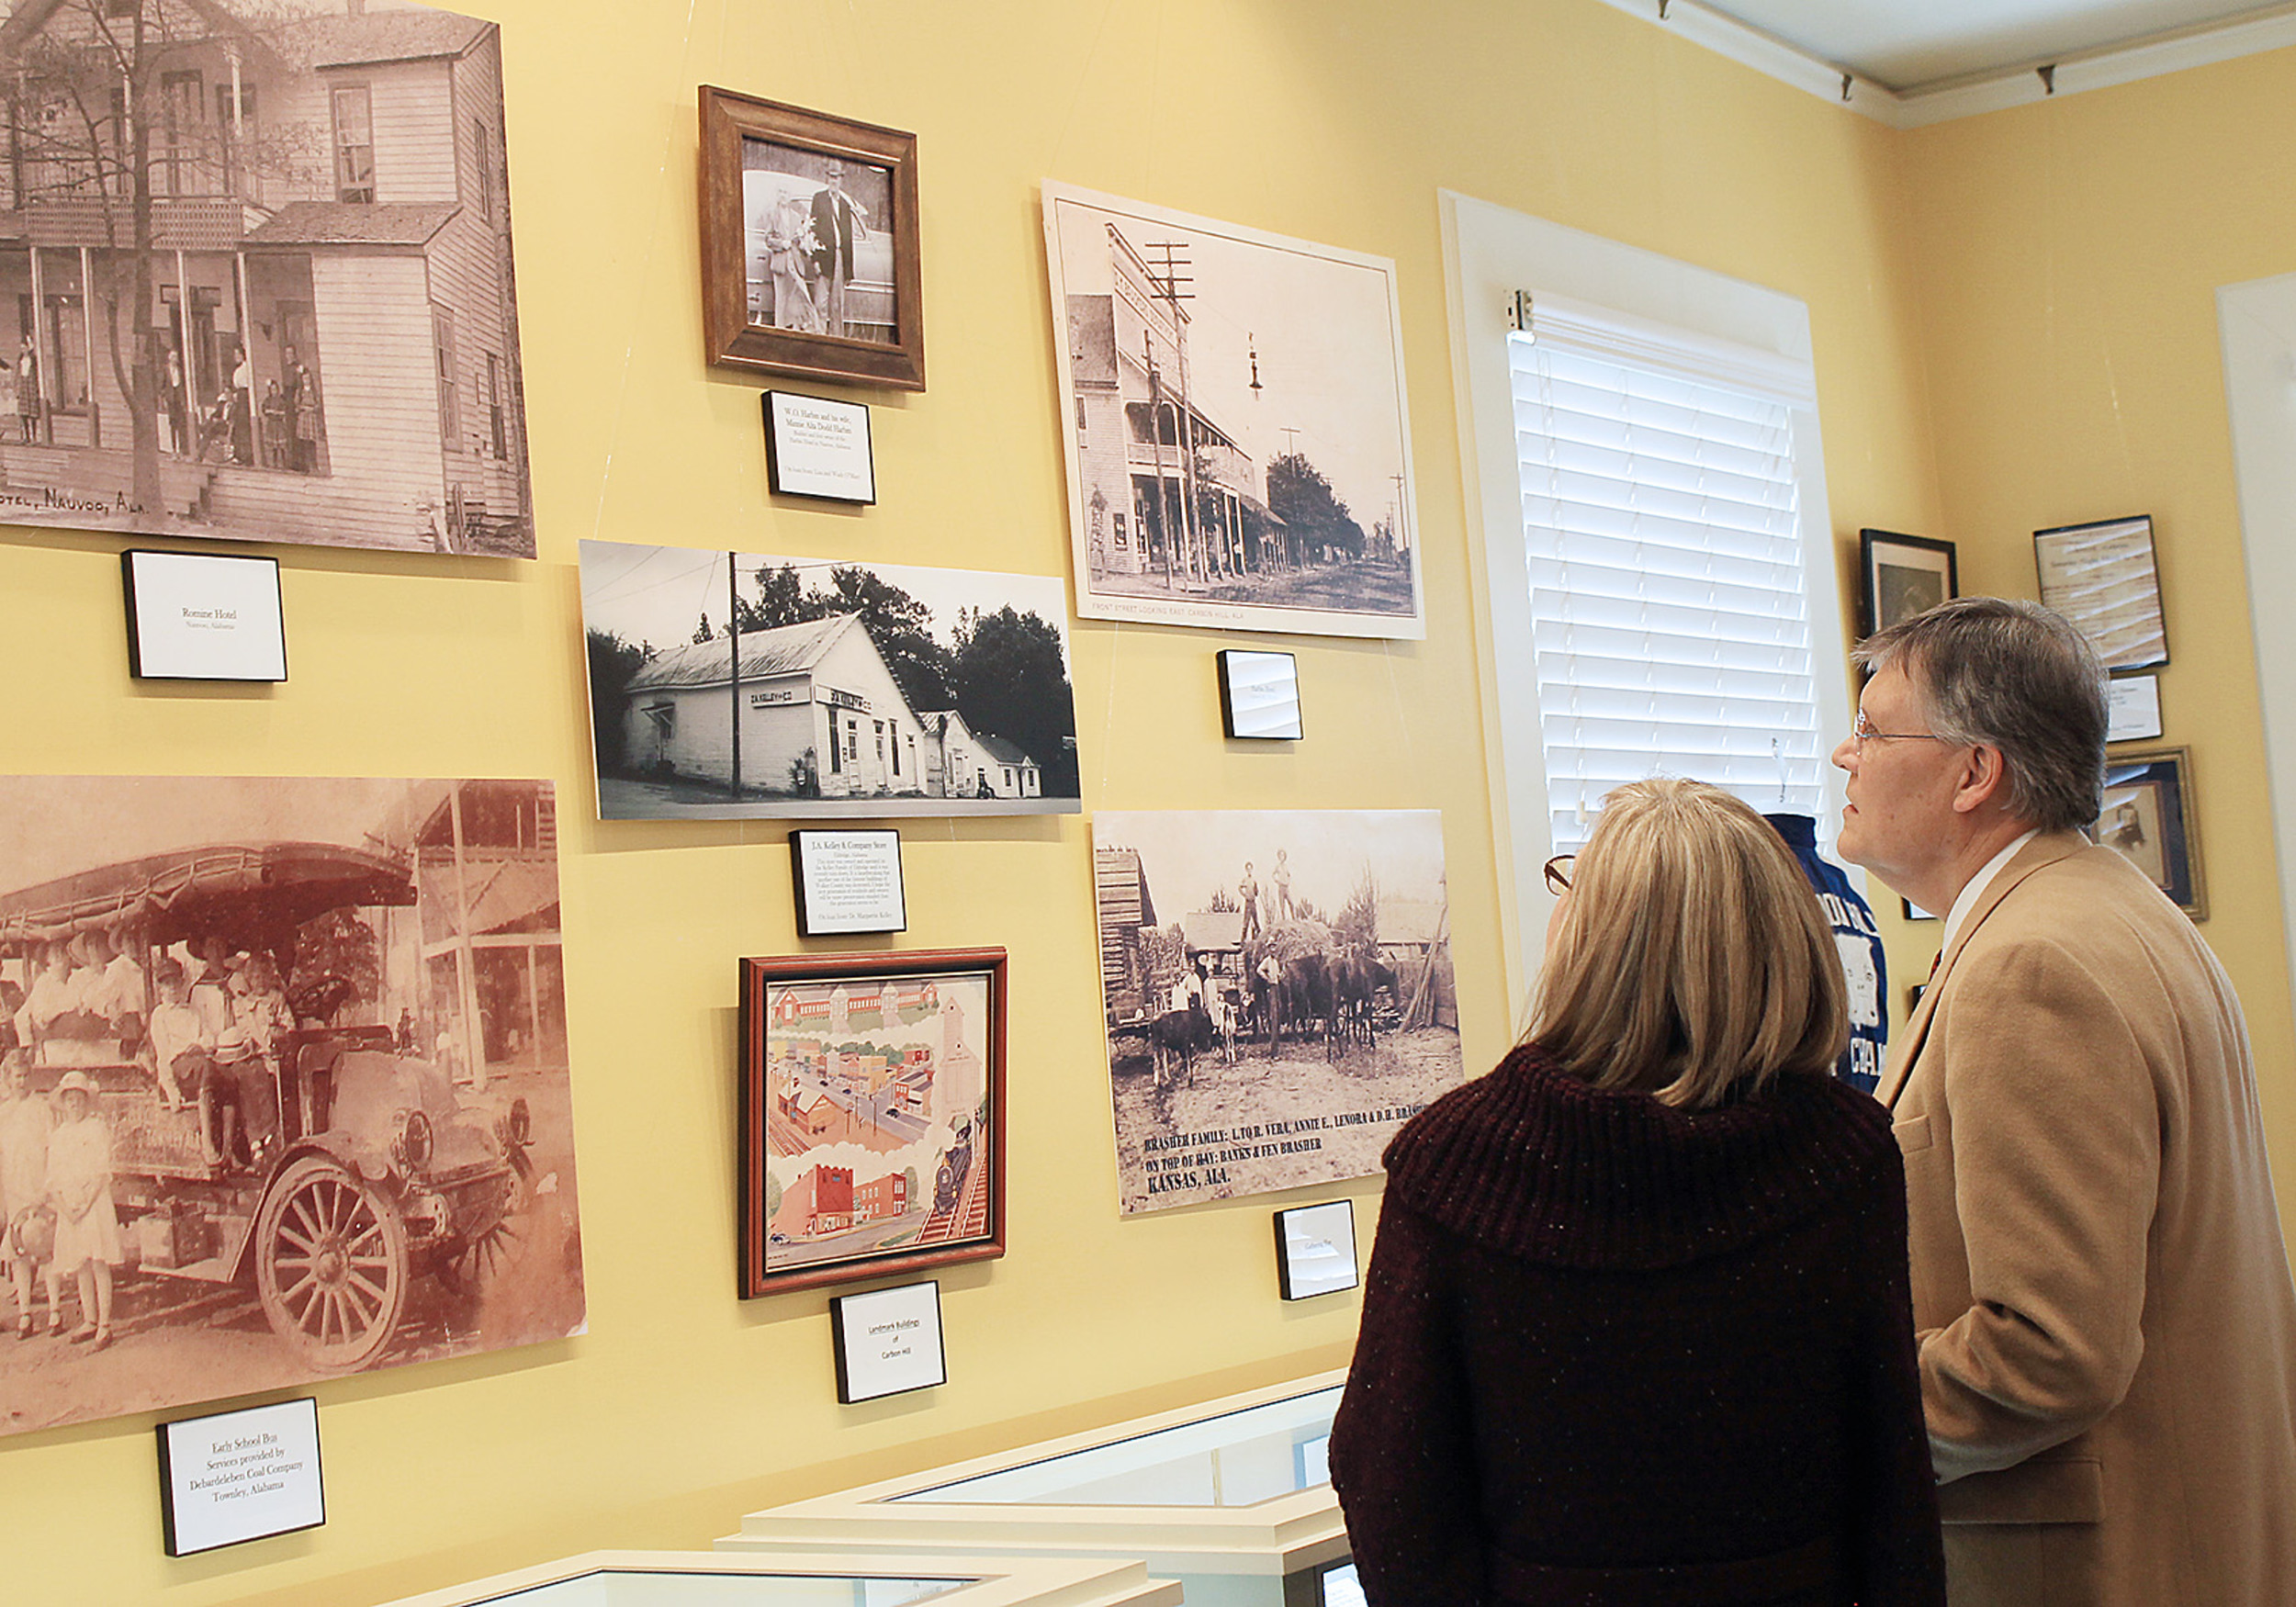 """Celebrating Our Communities: Chapter 1,"" an exhibit celebrating the histories of Carbon Hill, Eldridge, Kansas, Nauvoo and Townley, opened at the Bankhead House and Heritage Center on Feb. 14. The exhibit will remain up through June 9.  Daily Mountain Eagle - Jennifer Cohron"